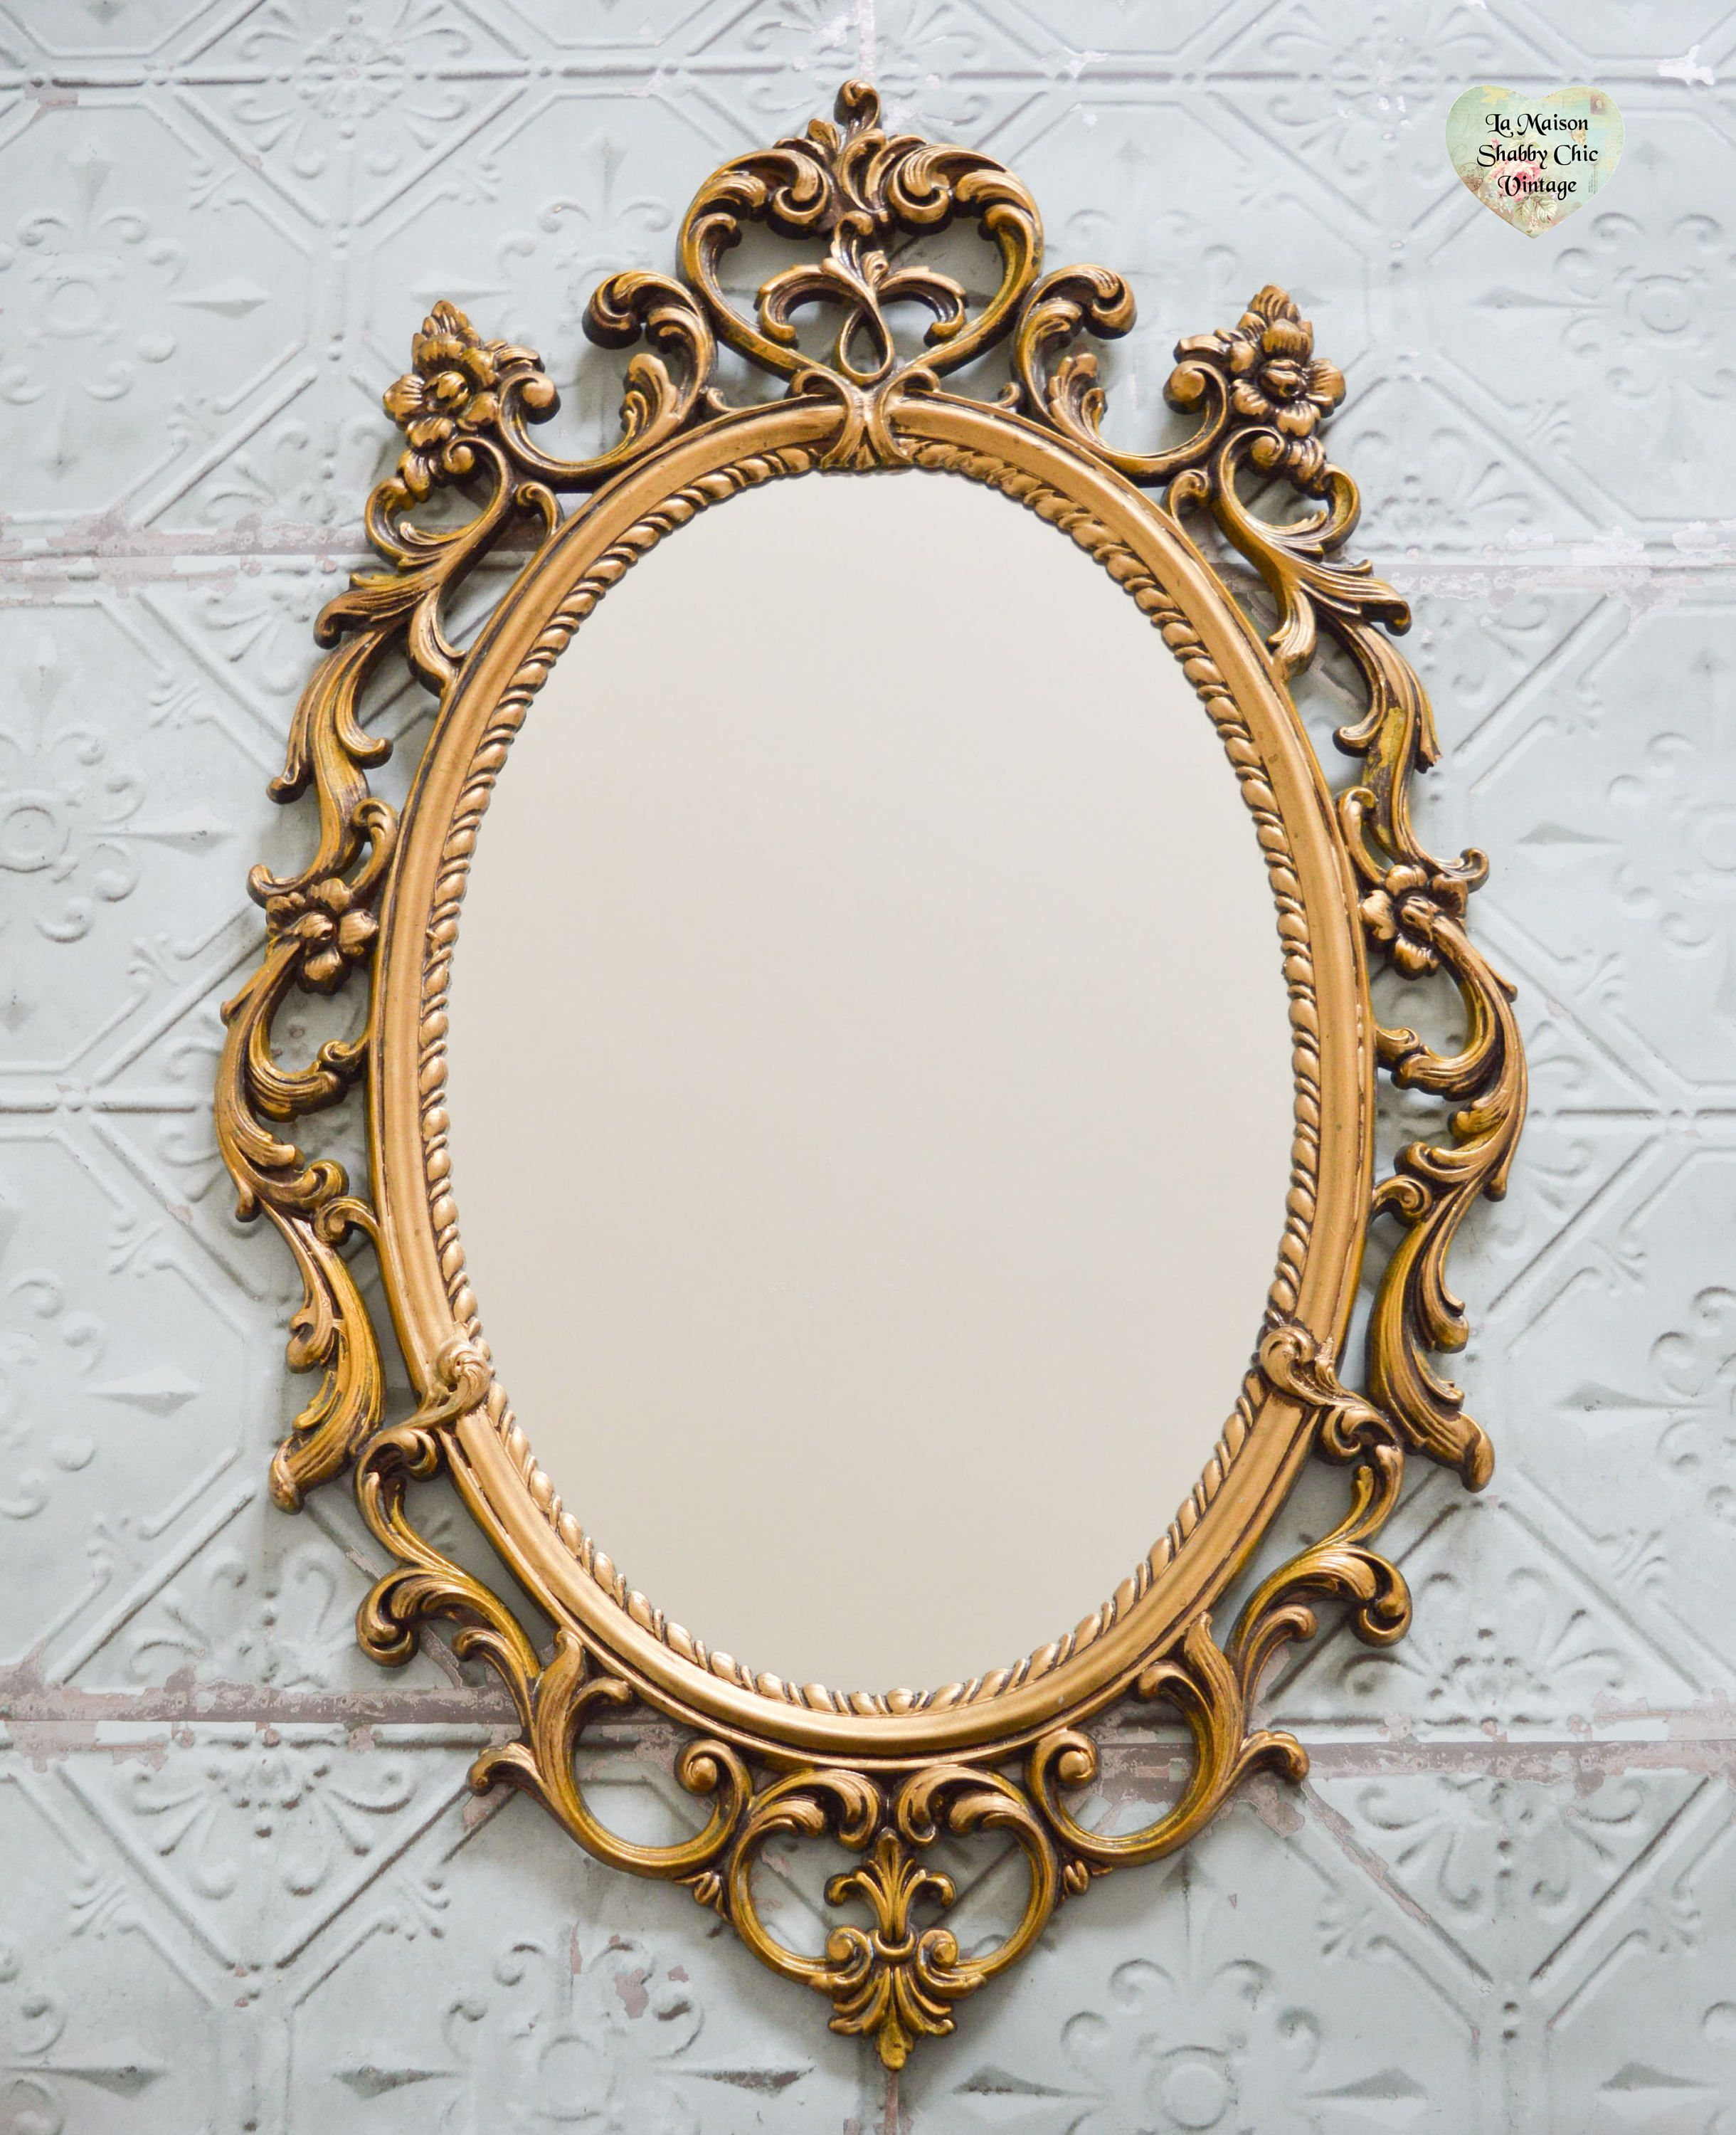 Baroque Gold Mirrors Mirror Antique Mirrors For Sale, Antique Frames, Gold Framed Mirror, Baroque  Mirror,